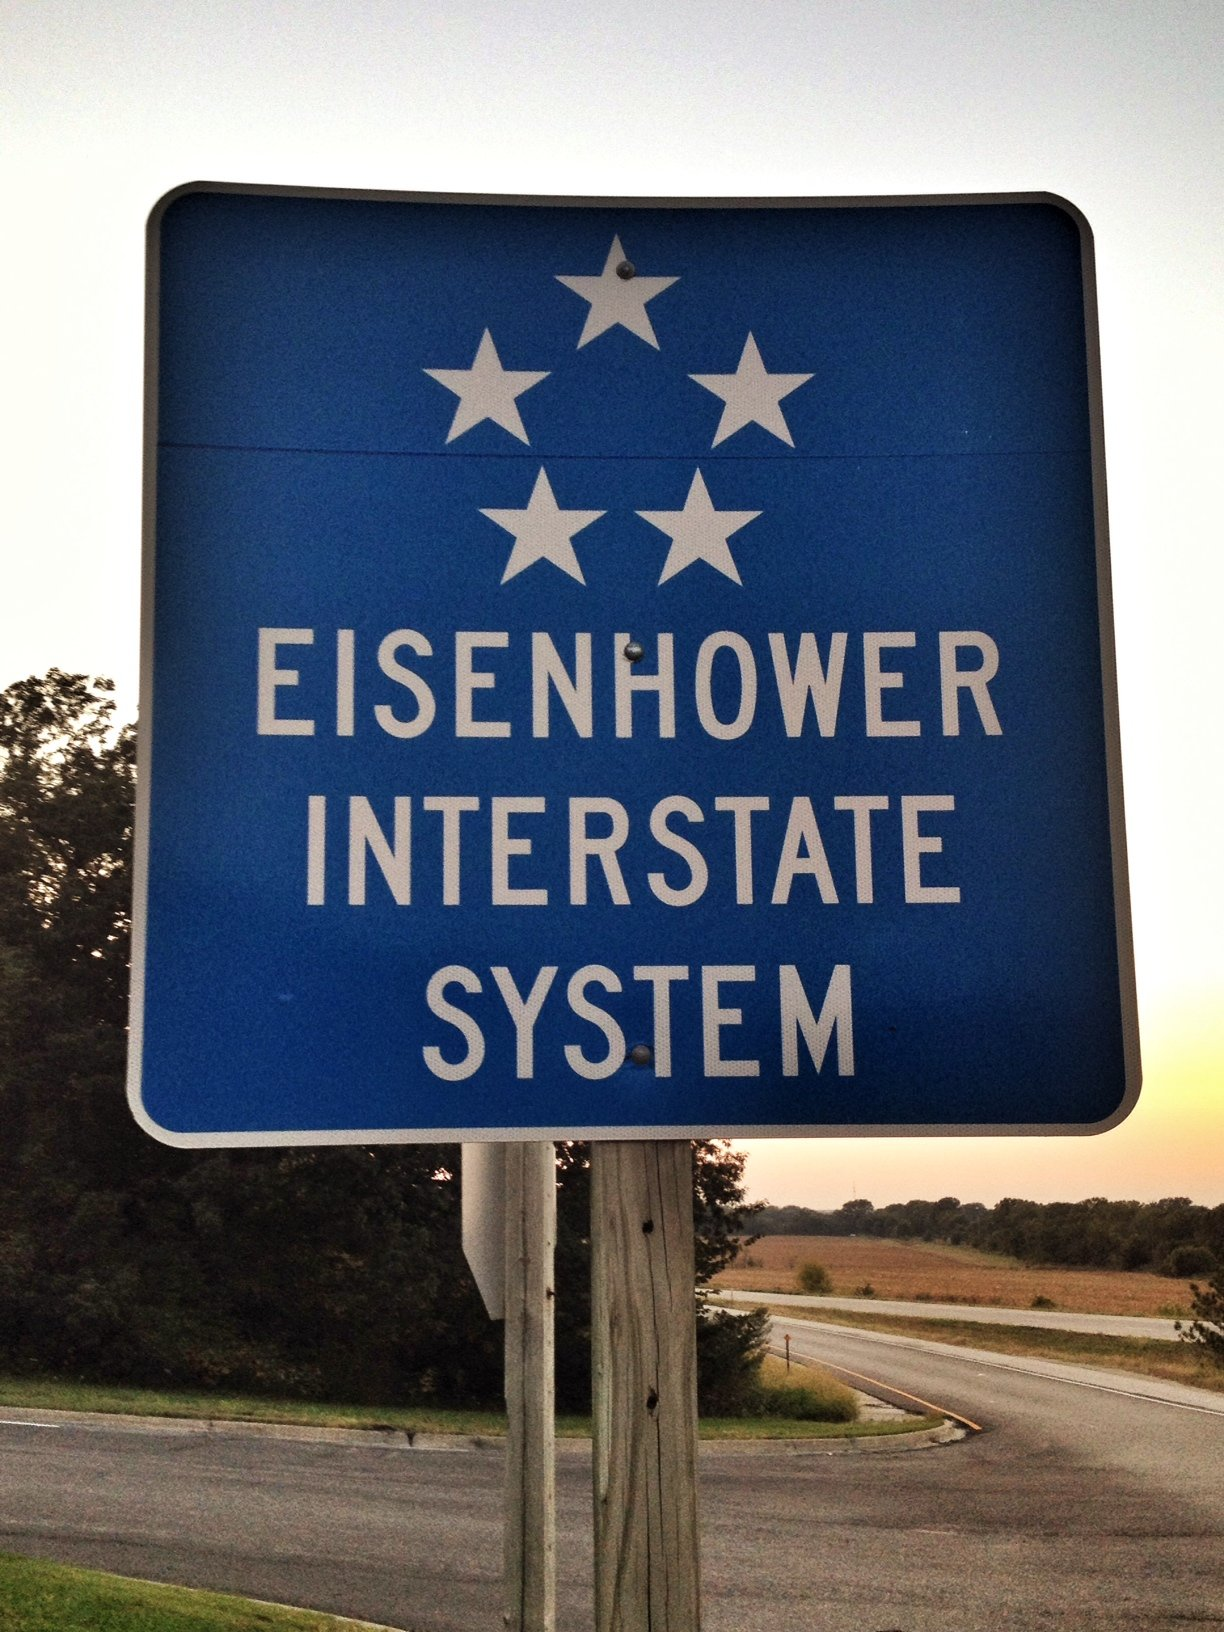 Interstate 35 is part of the Kansas Turnpike and part of the Eisenhower Interstate System.